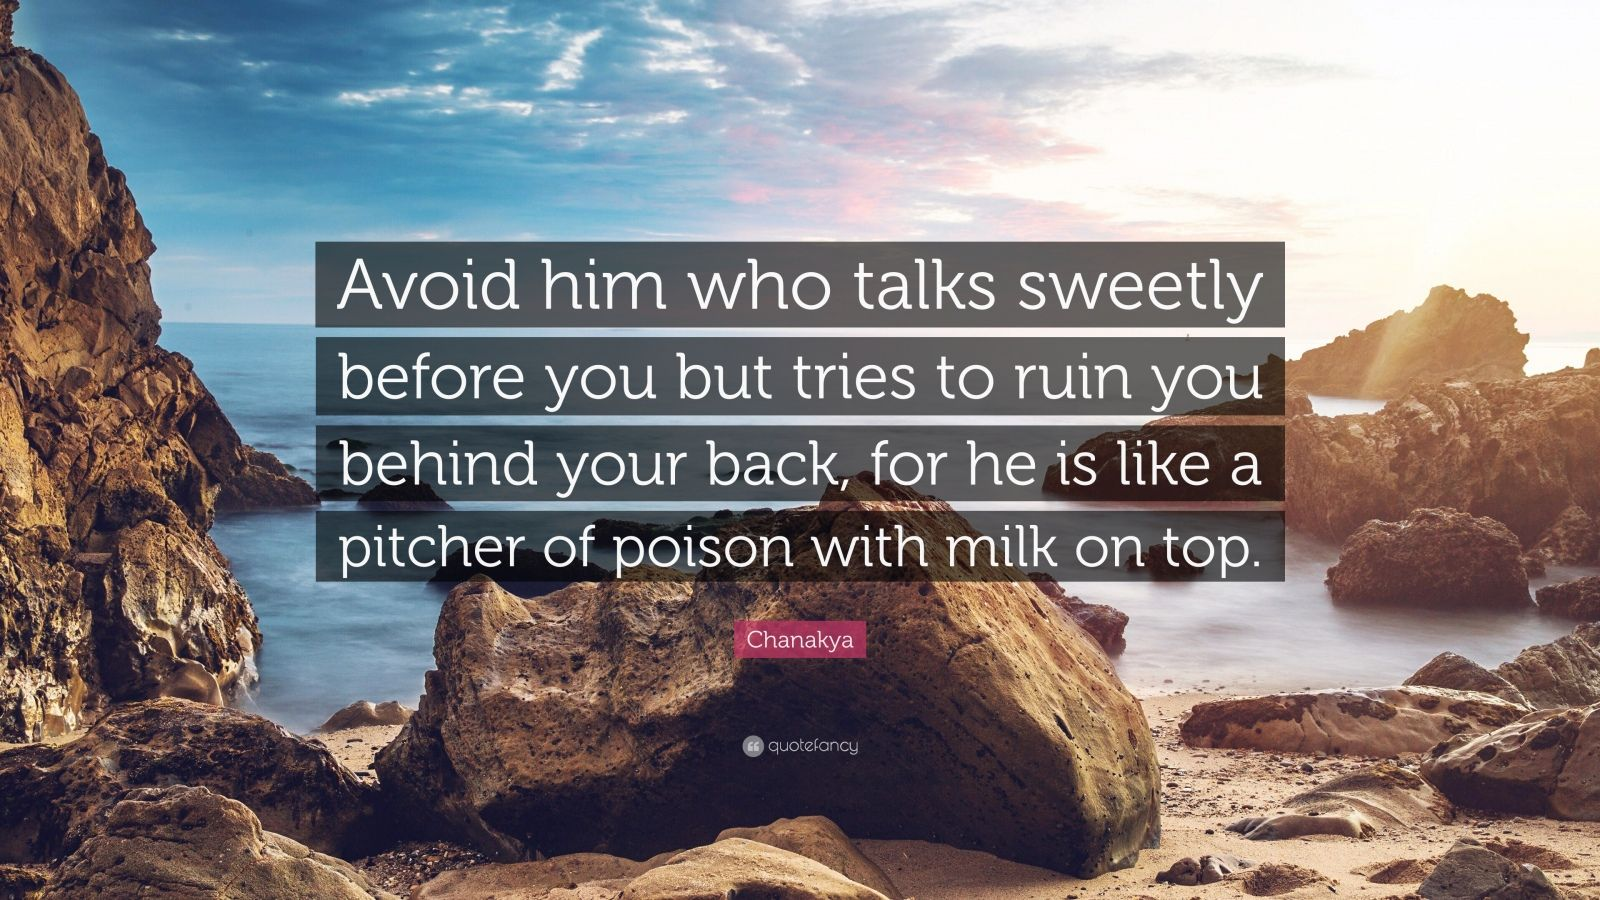 """Chanakya Quote: """"Avoid him who talks sweetly before you but tries to ruin you behind your back, for he is like a pitcher of poison with milk on top."""""""